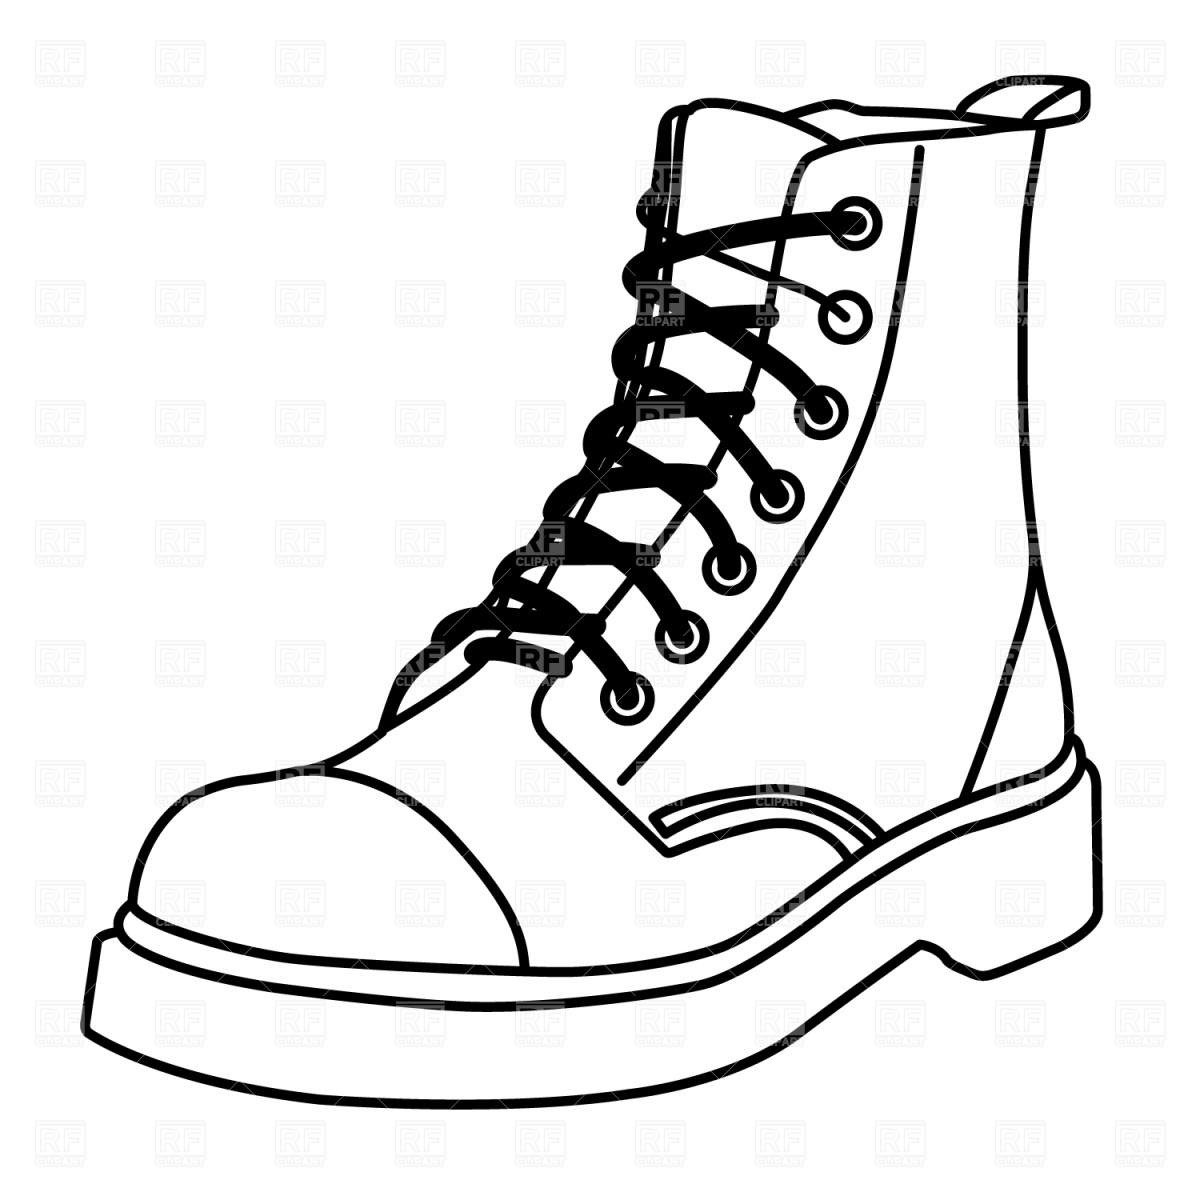 Boots Clip Art Black And WhiteCowboy Boots Clip Art Black And White